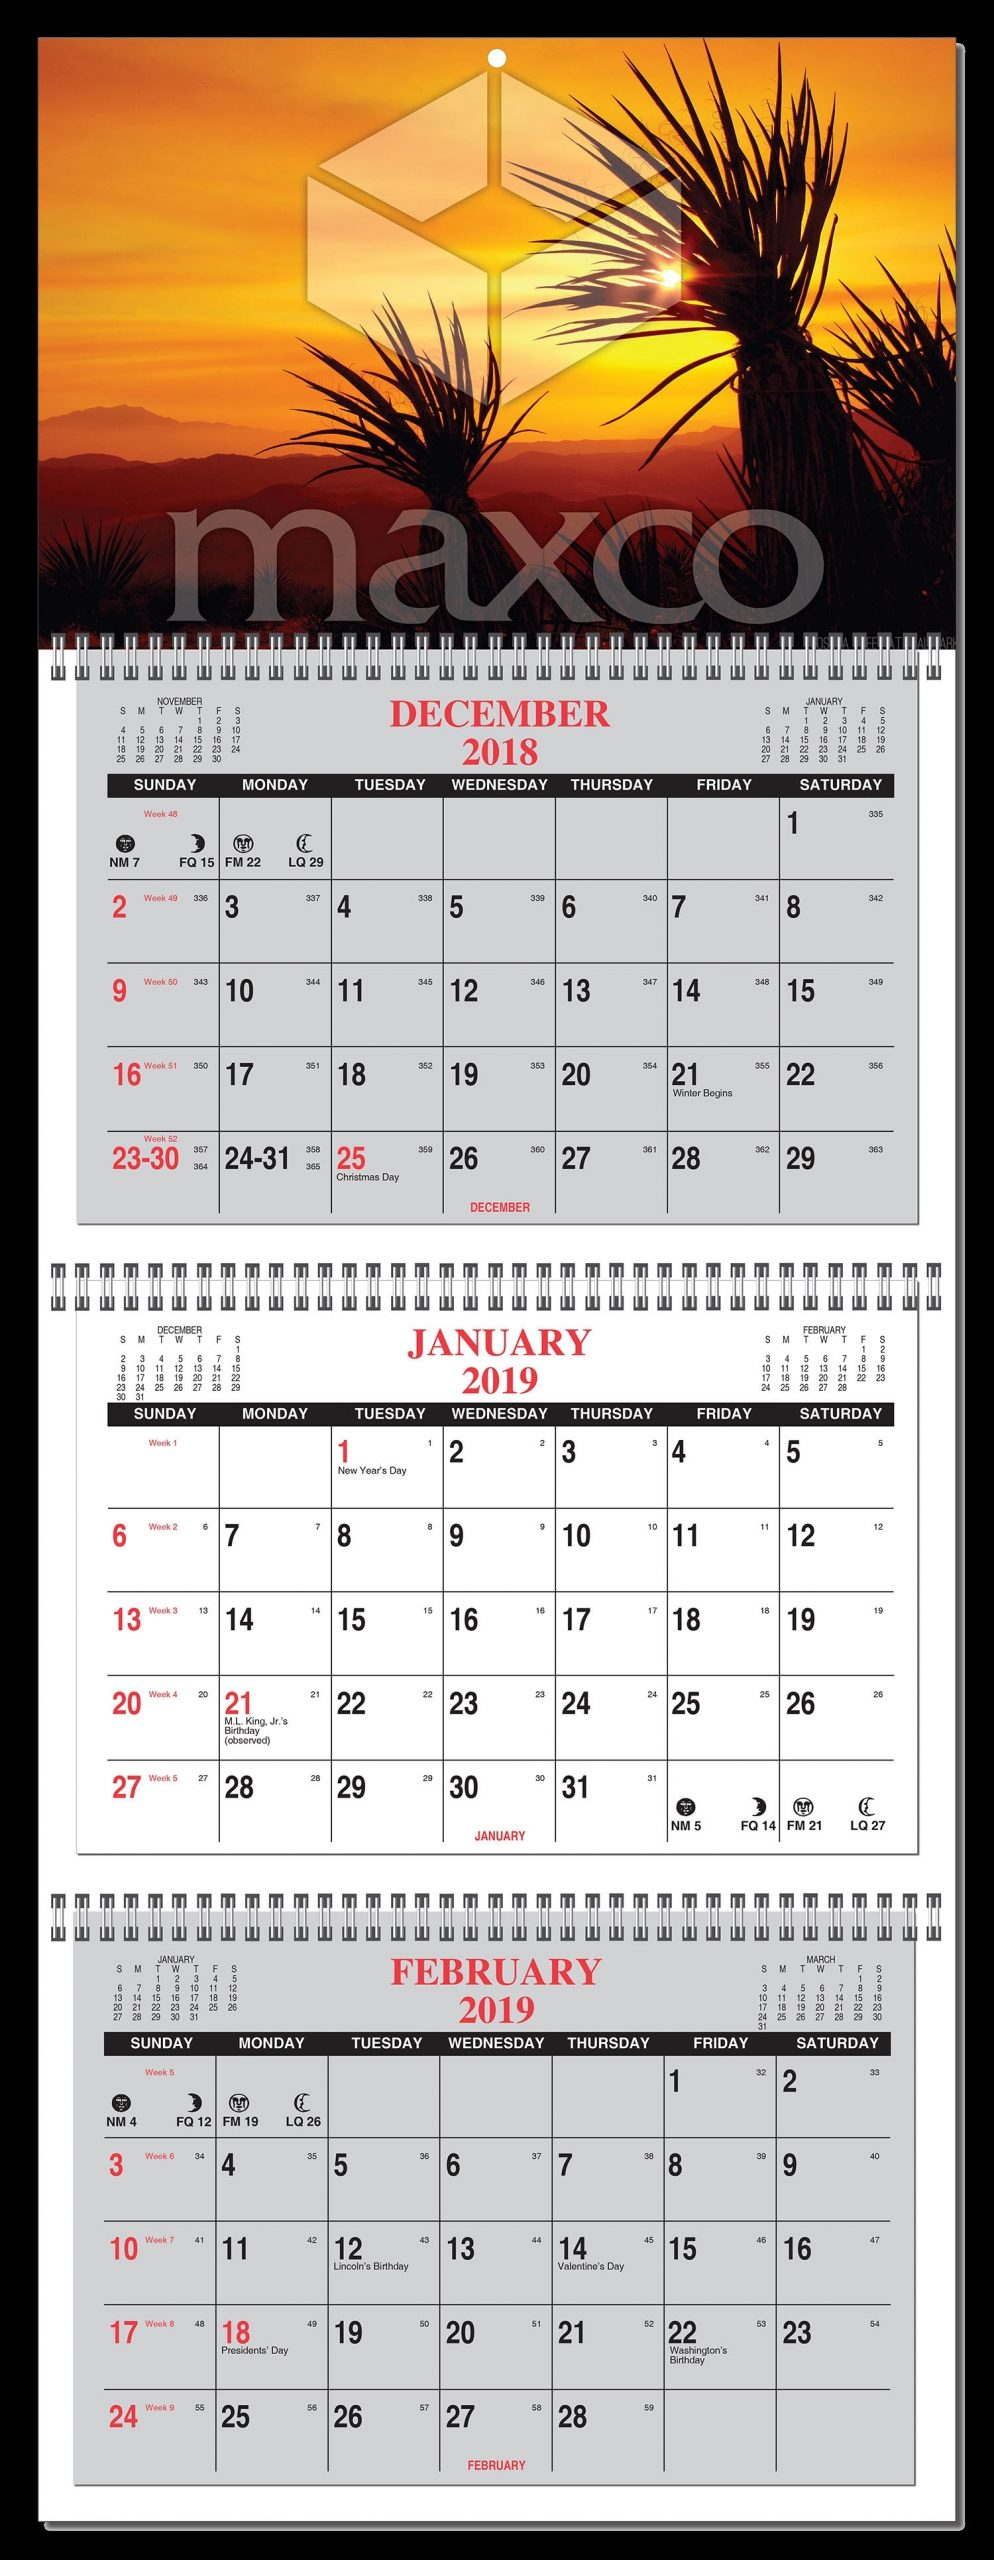 3 Month Calendar At A Glance (With Advertising)- 4 Panel With Numbered Weeks